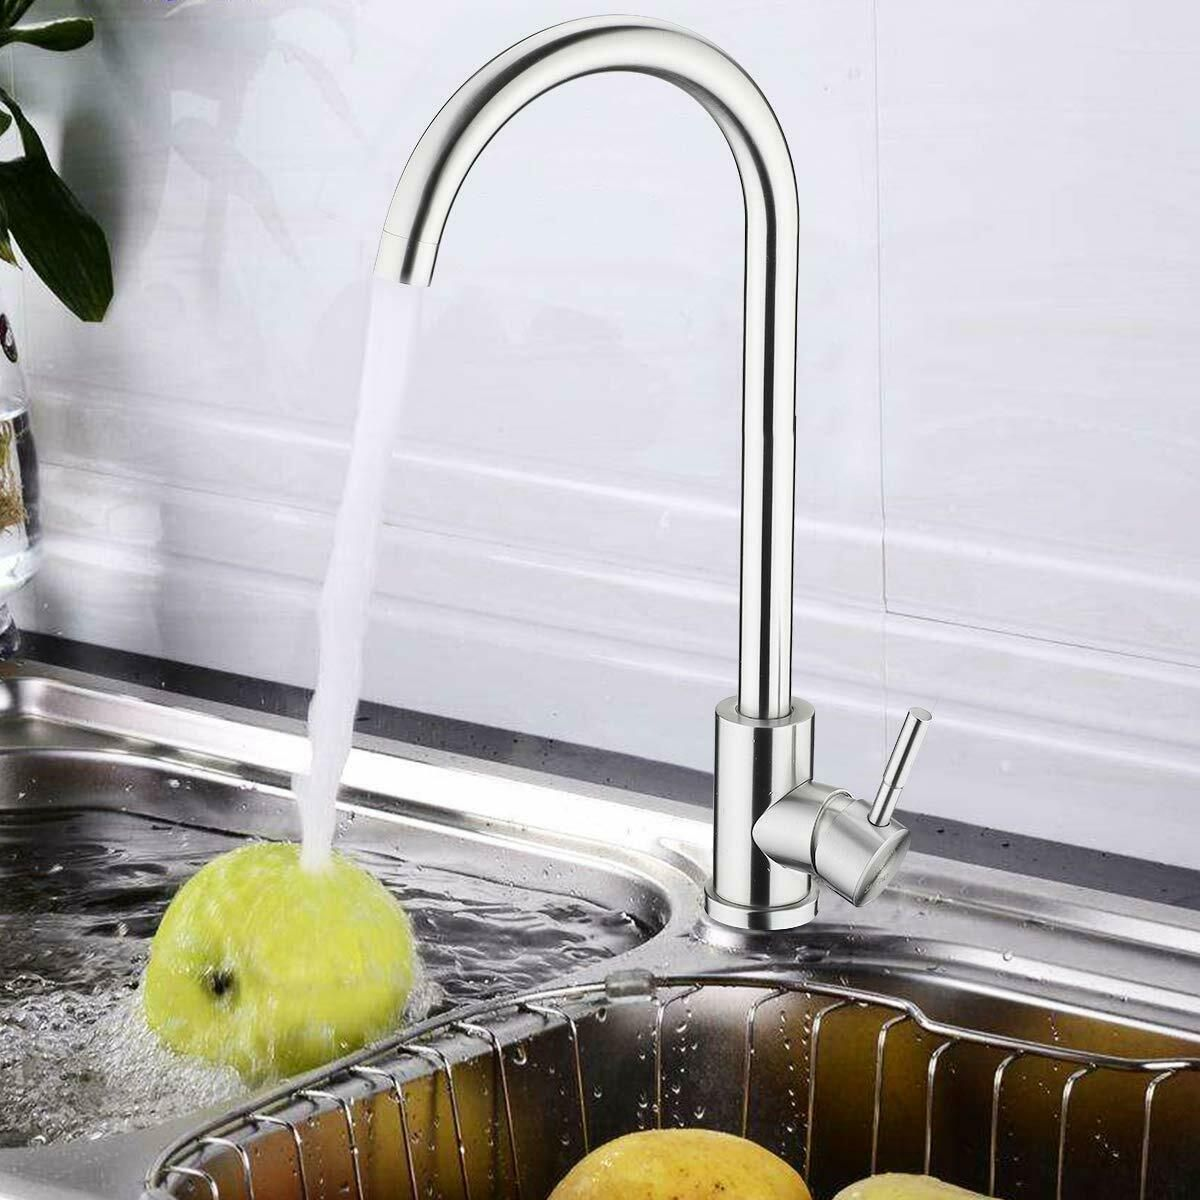 Kitchen Sink Faucet Single Handle Sprayer Brass Cold Hot Water Mixer Tap W5j7 Kitchen Faucets Ideas Of Kitchen Sink Faucets Sink Faucets Kitchen Faucet